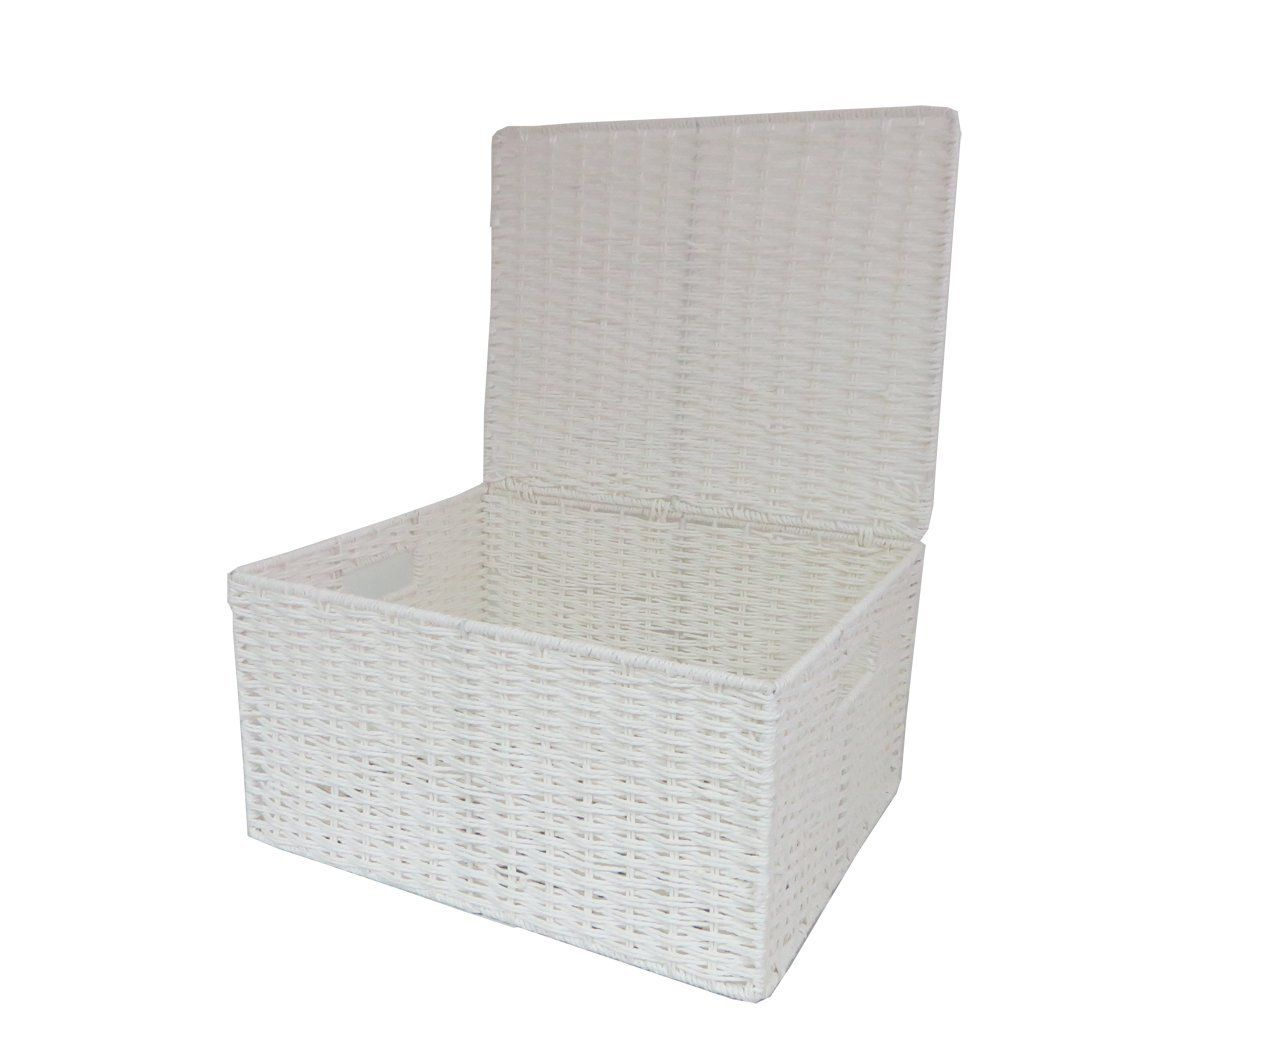 Attirant Arpan Paper Rope Storage Basket Box With Lid   White (Large ): Amazon.